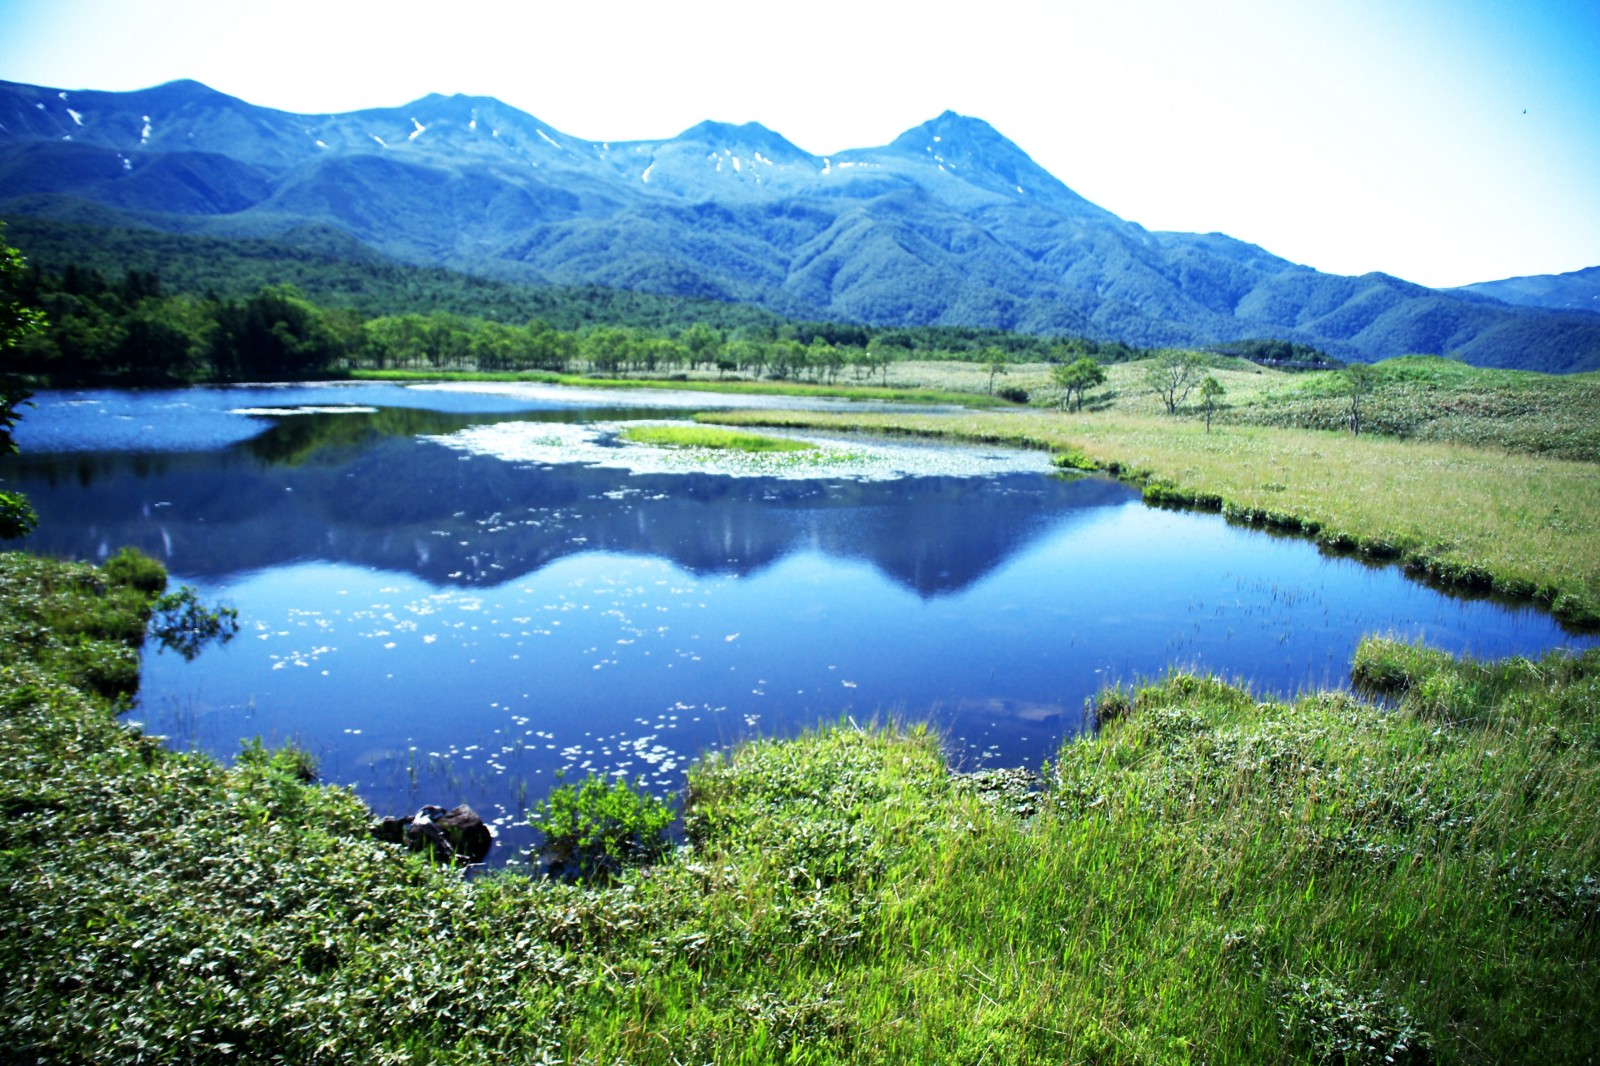 The majestic nature of Shiretoko National Park